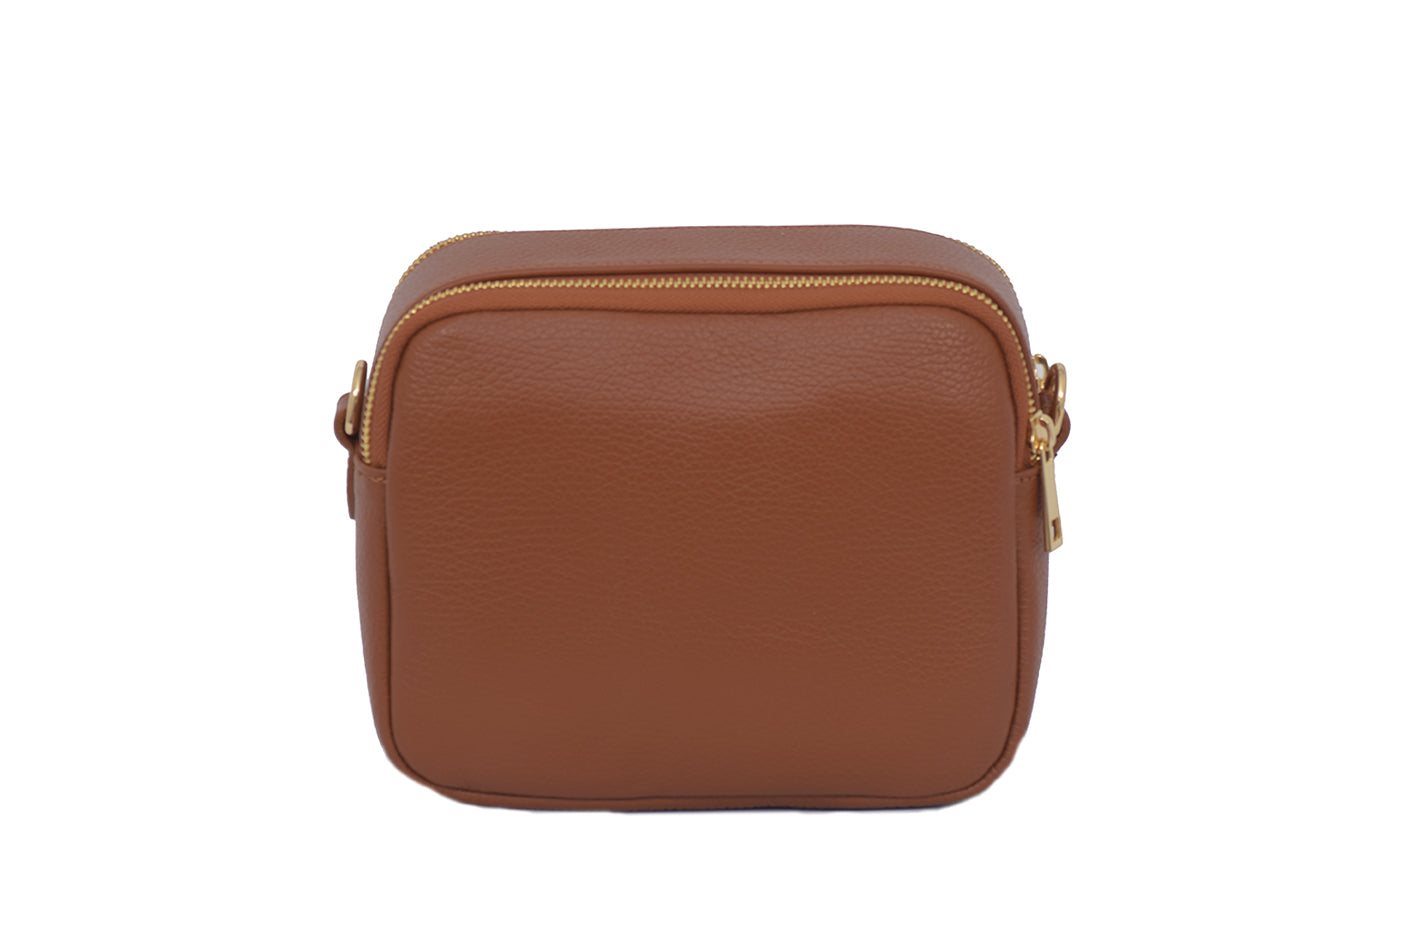 Tan real soft leather compact cross body bag with leather travel card slip pocket and double zip closure